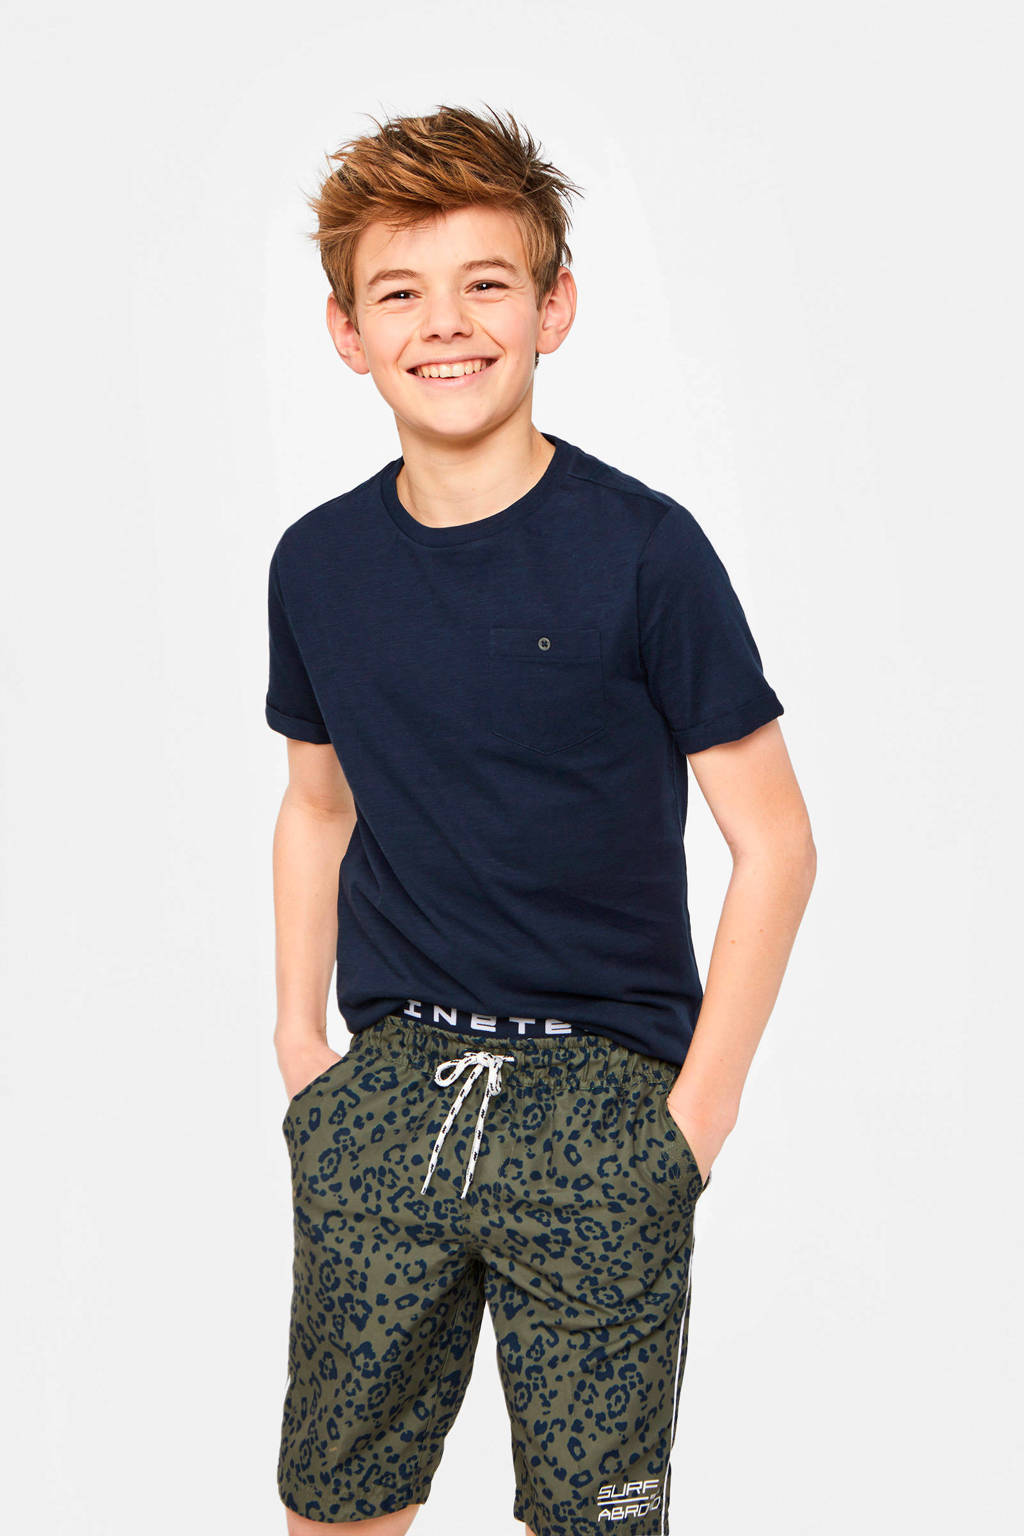 WE Fashion zwemshort met all over print army groen/donkerblauw, Army groen/donkerblauw